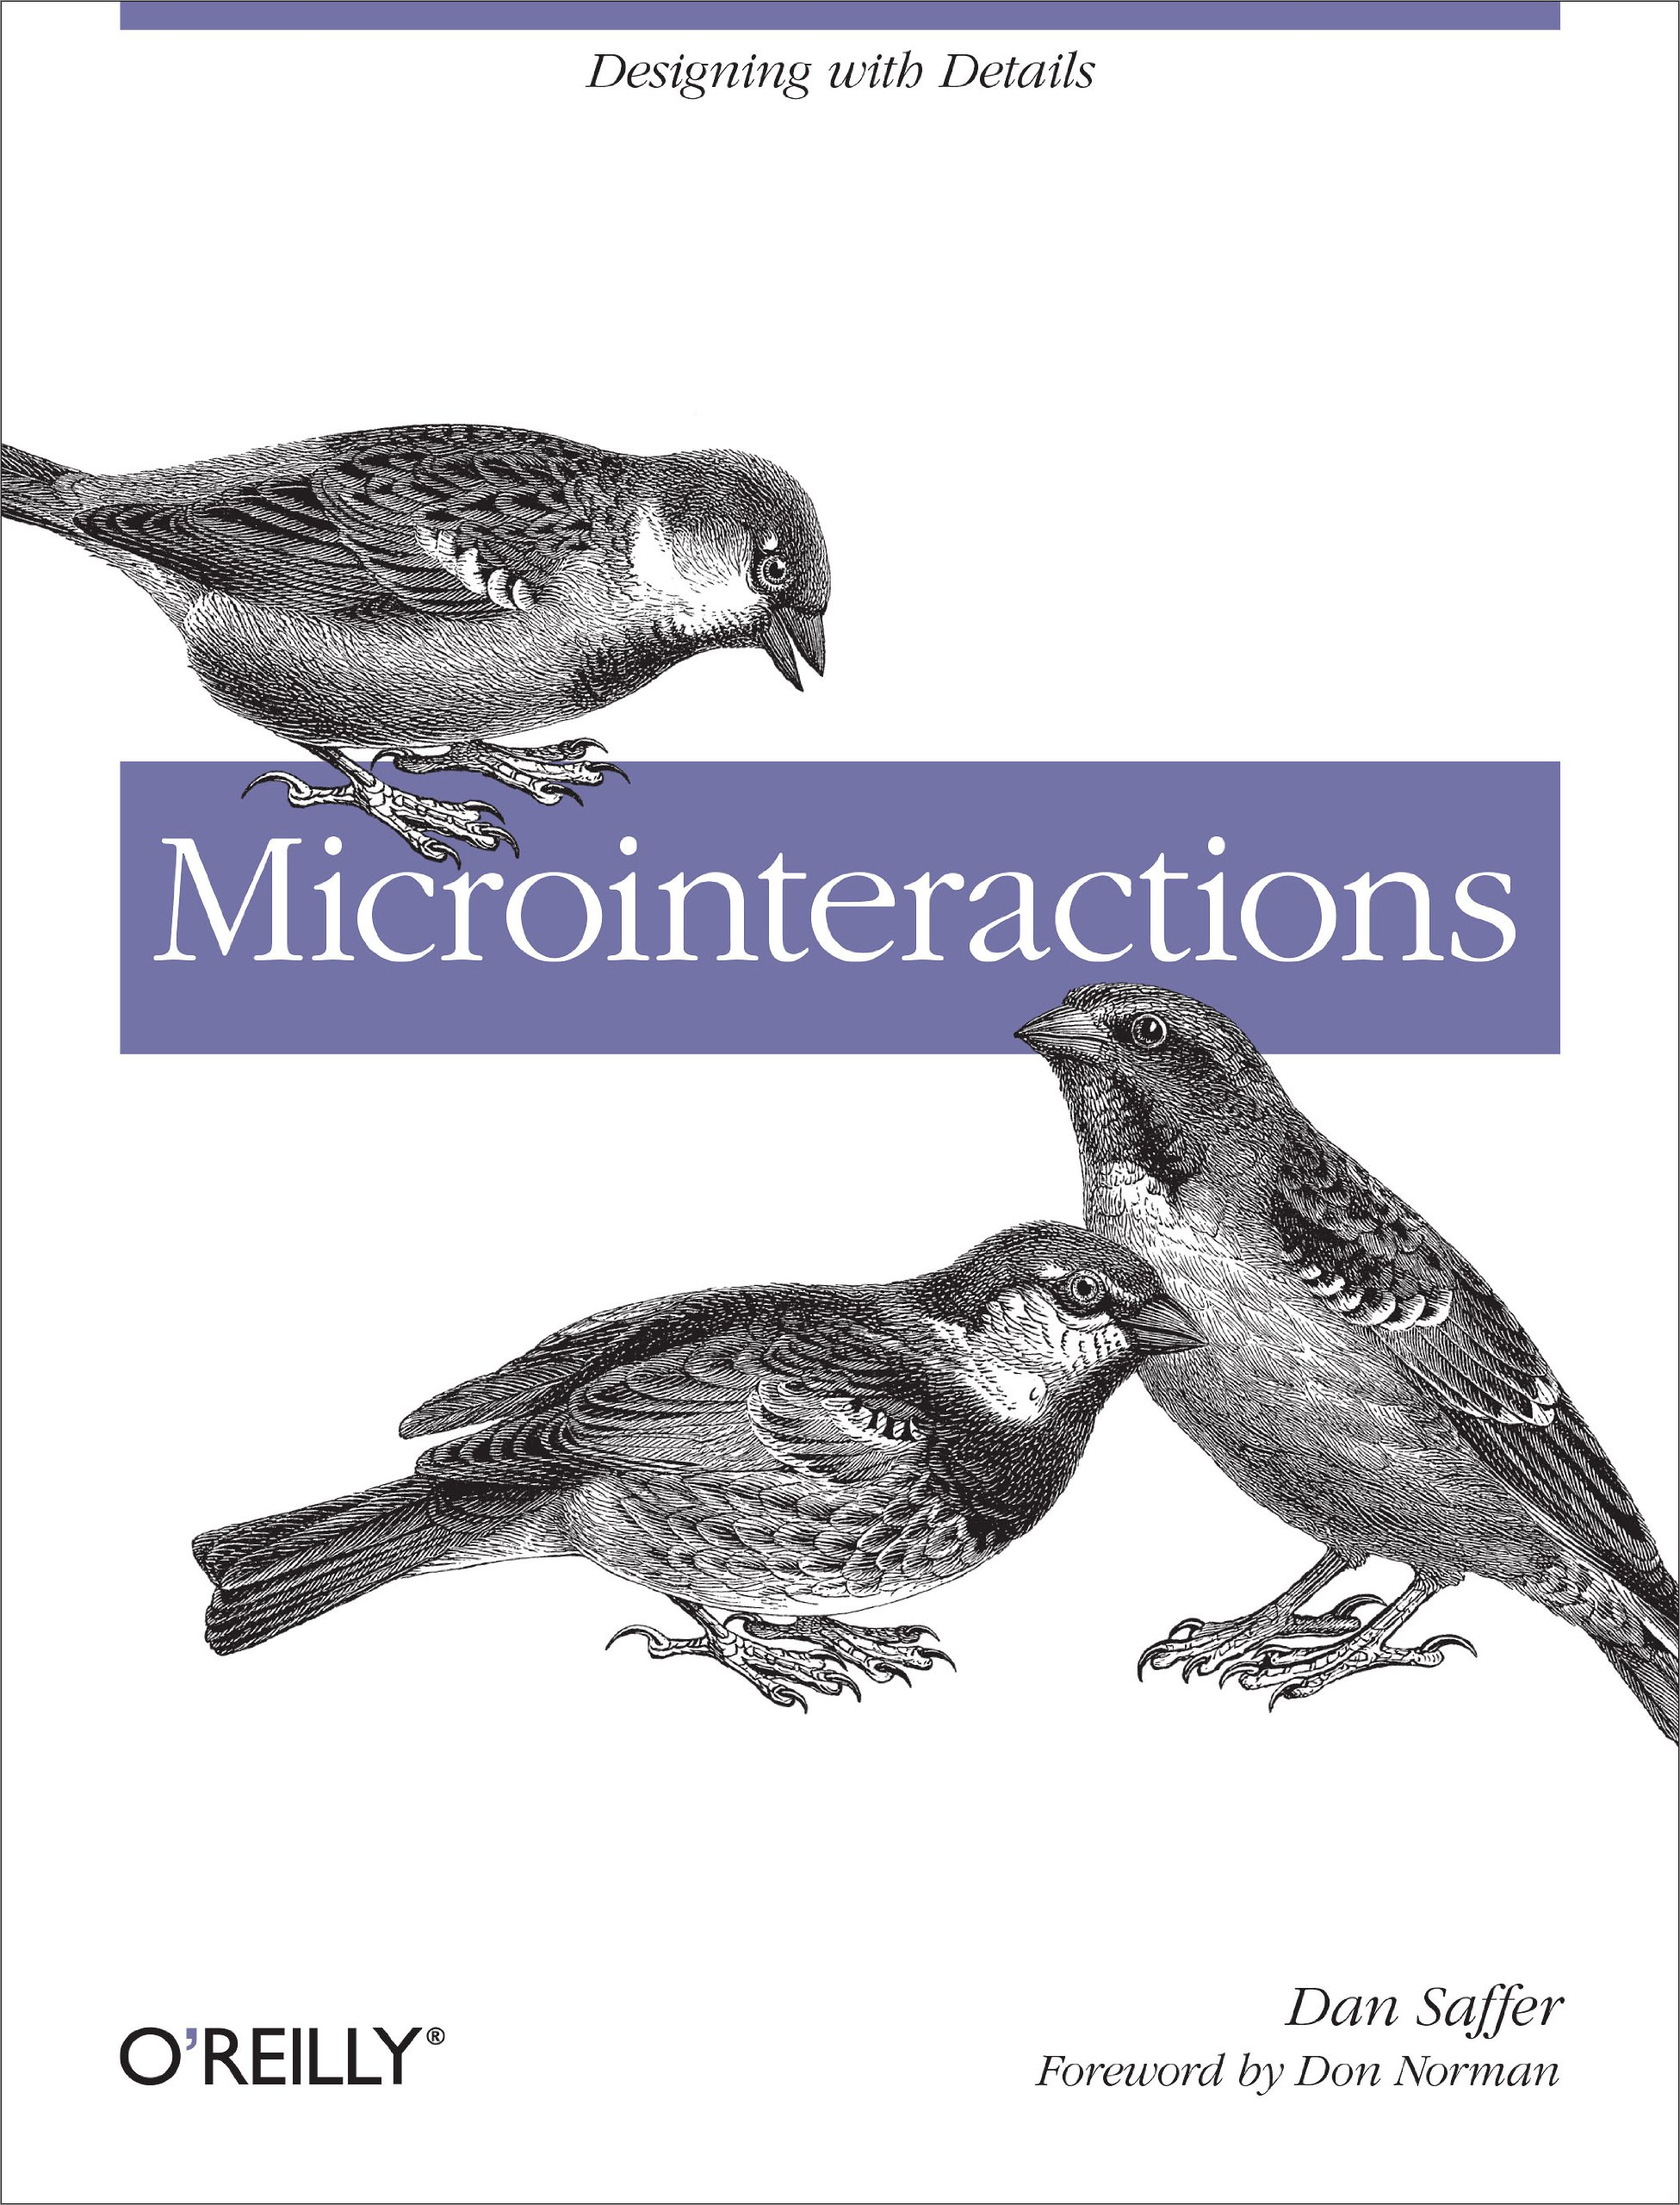 Microinteractions: Designing with Details by Dan Saffer